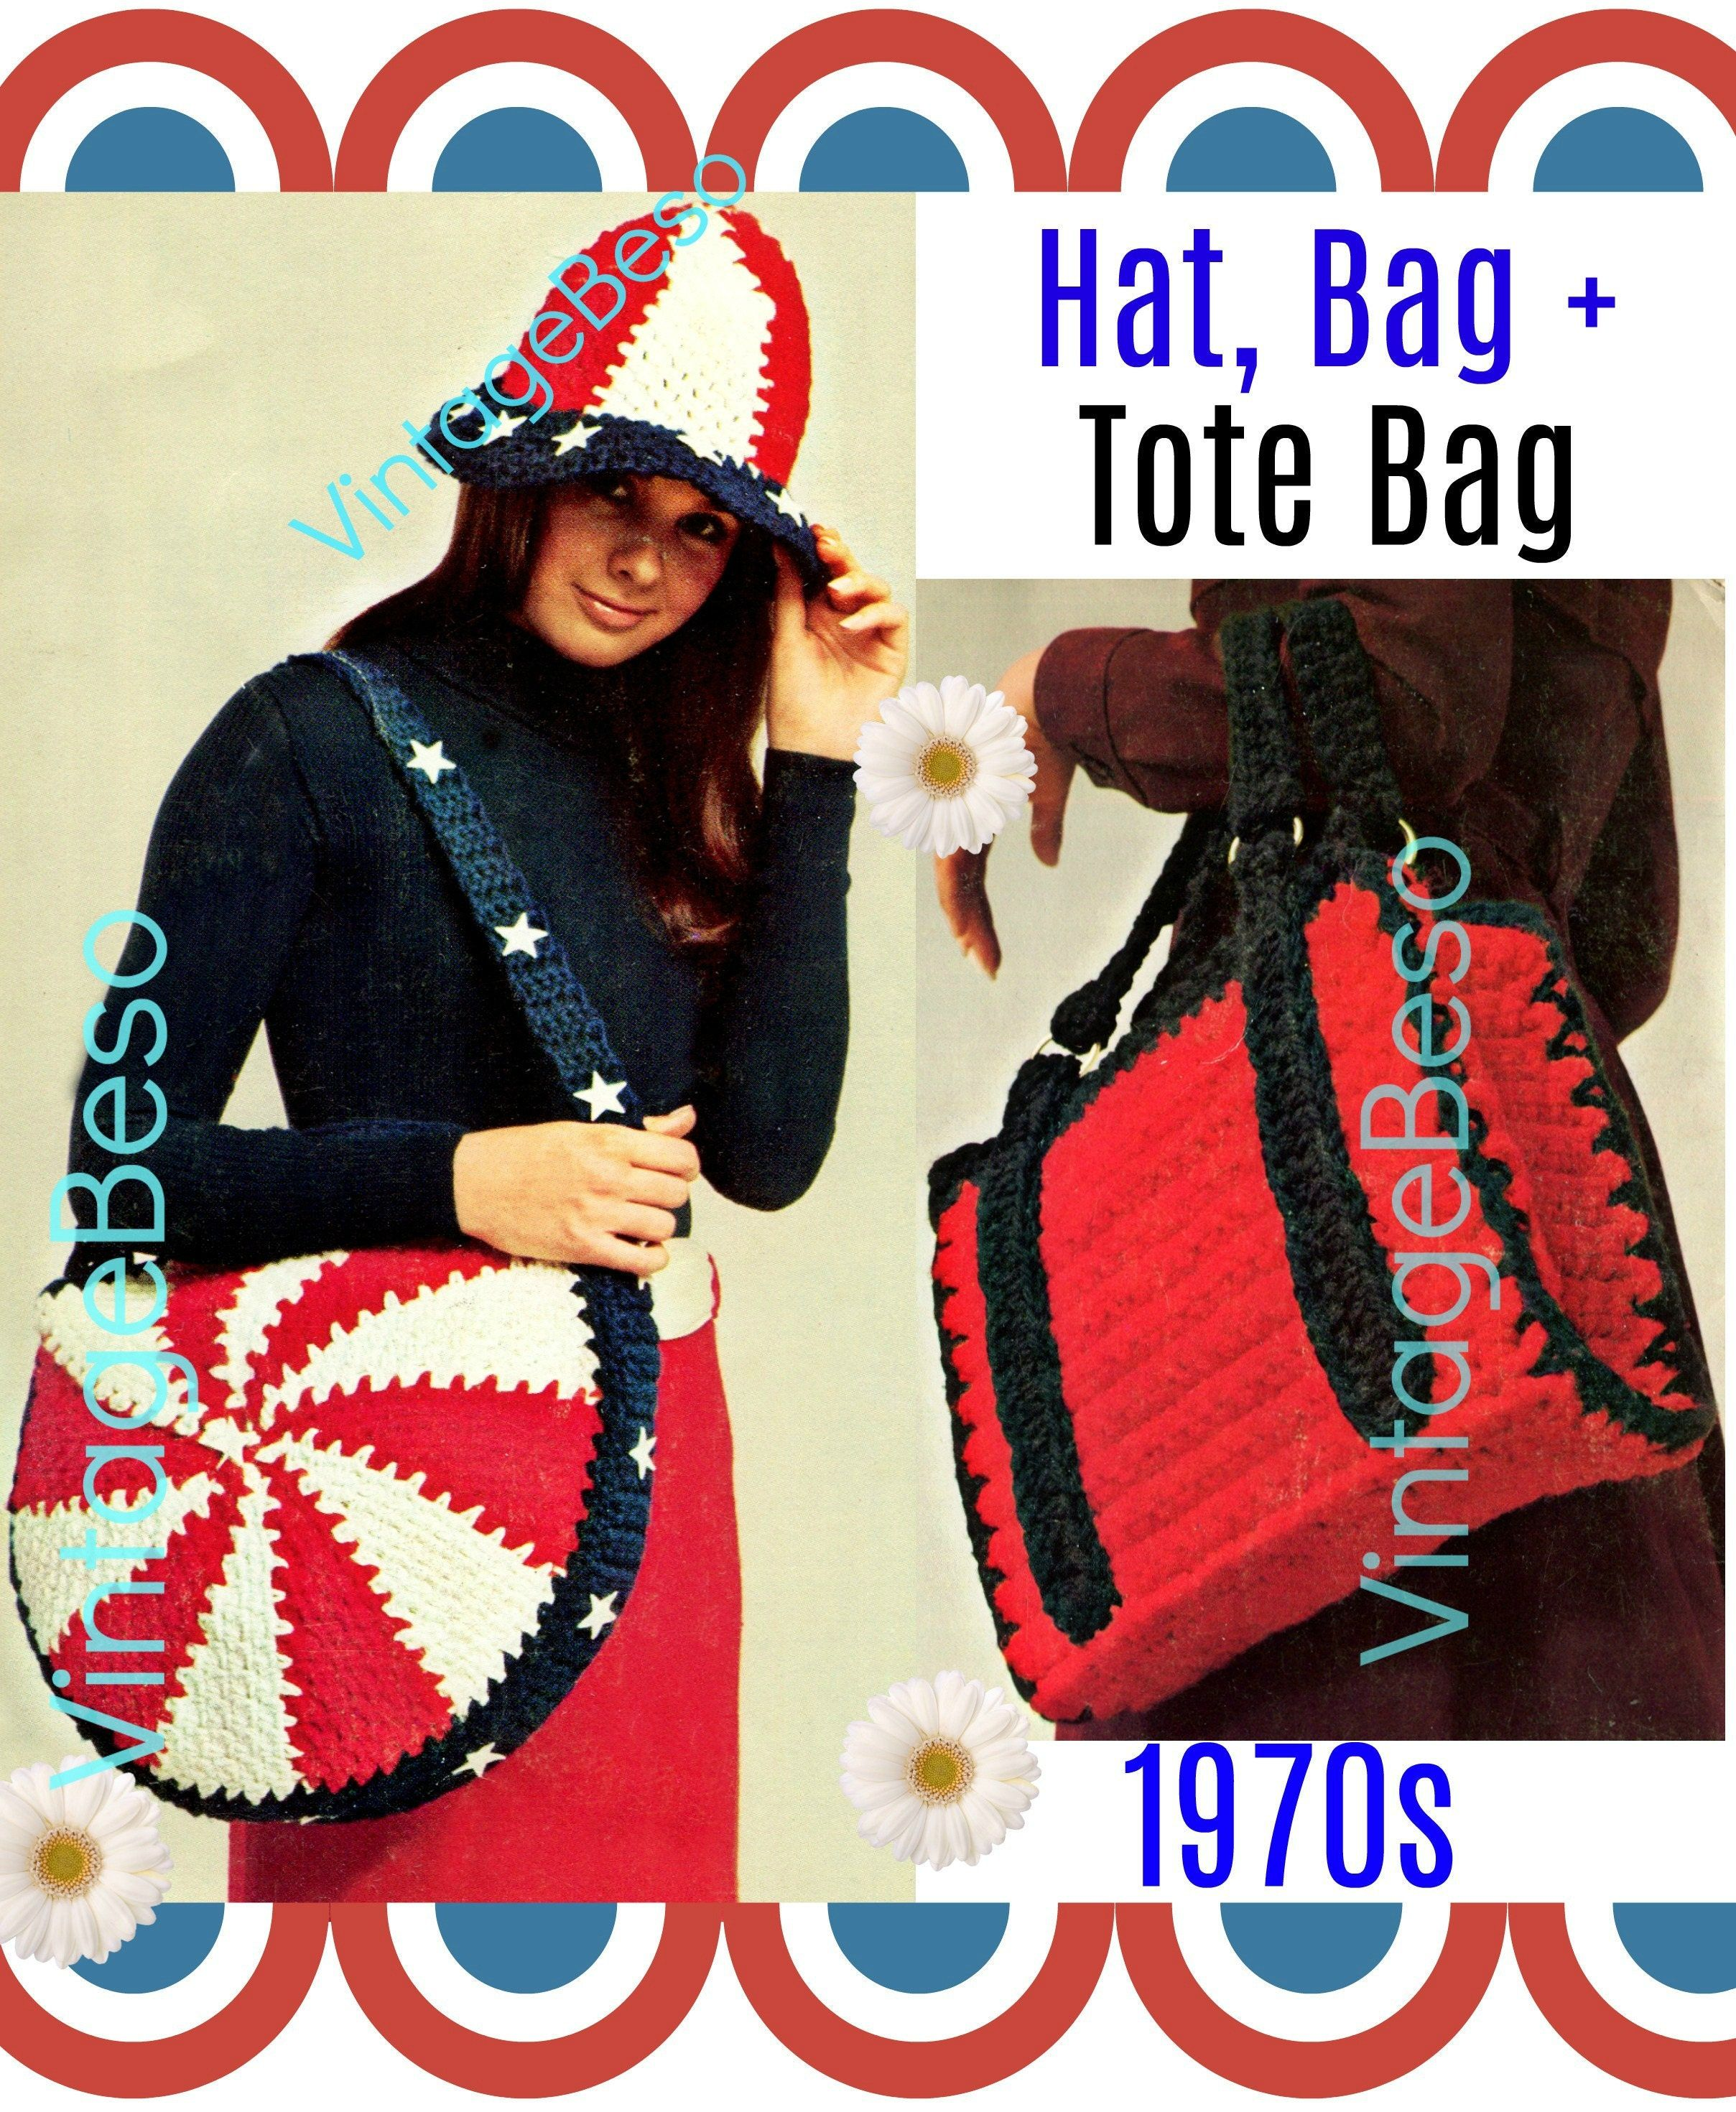 3 Patterns * Patriotic 1970s Vintage Crochet Pattern * Hat Cap Bag Purse Tote Briefcase Crochet * Great for Beginners * Watermarked PDF Only